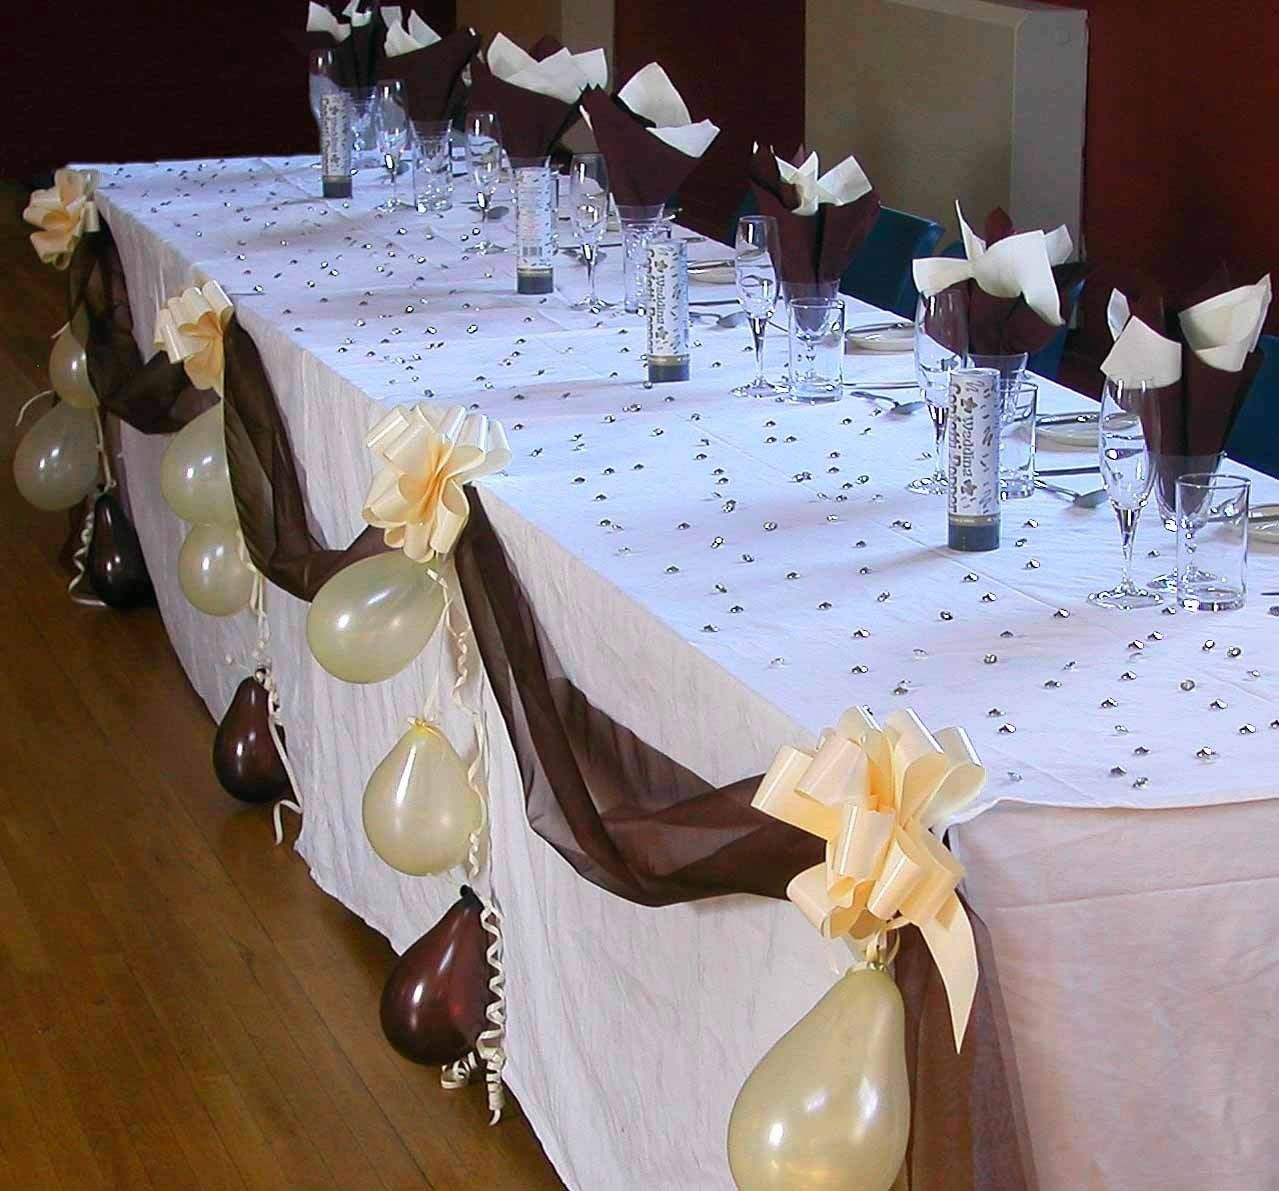 Wedding Top Table Decoration Kit Organza Fabric Swags Pull Bows Balloons